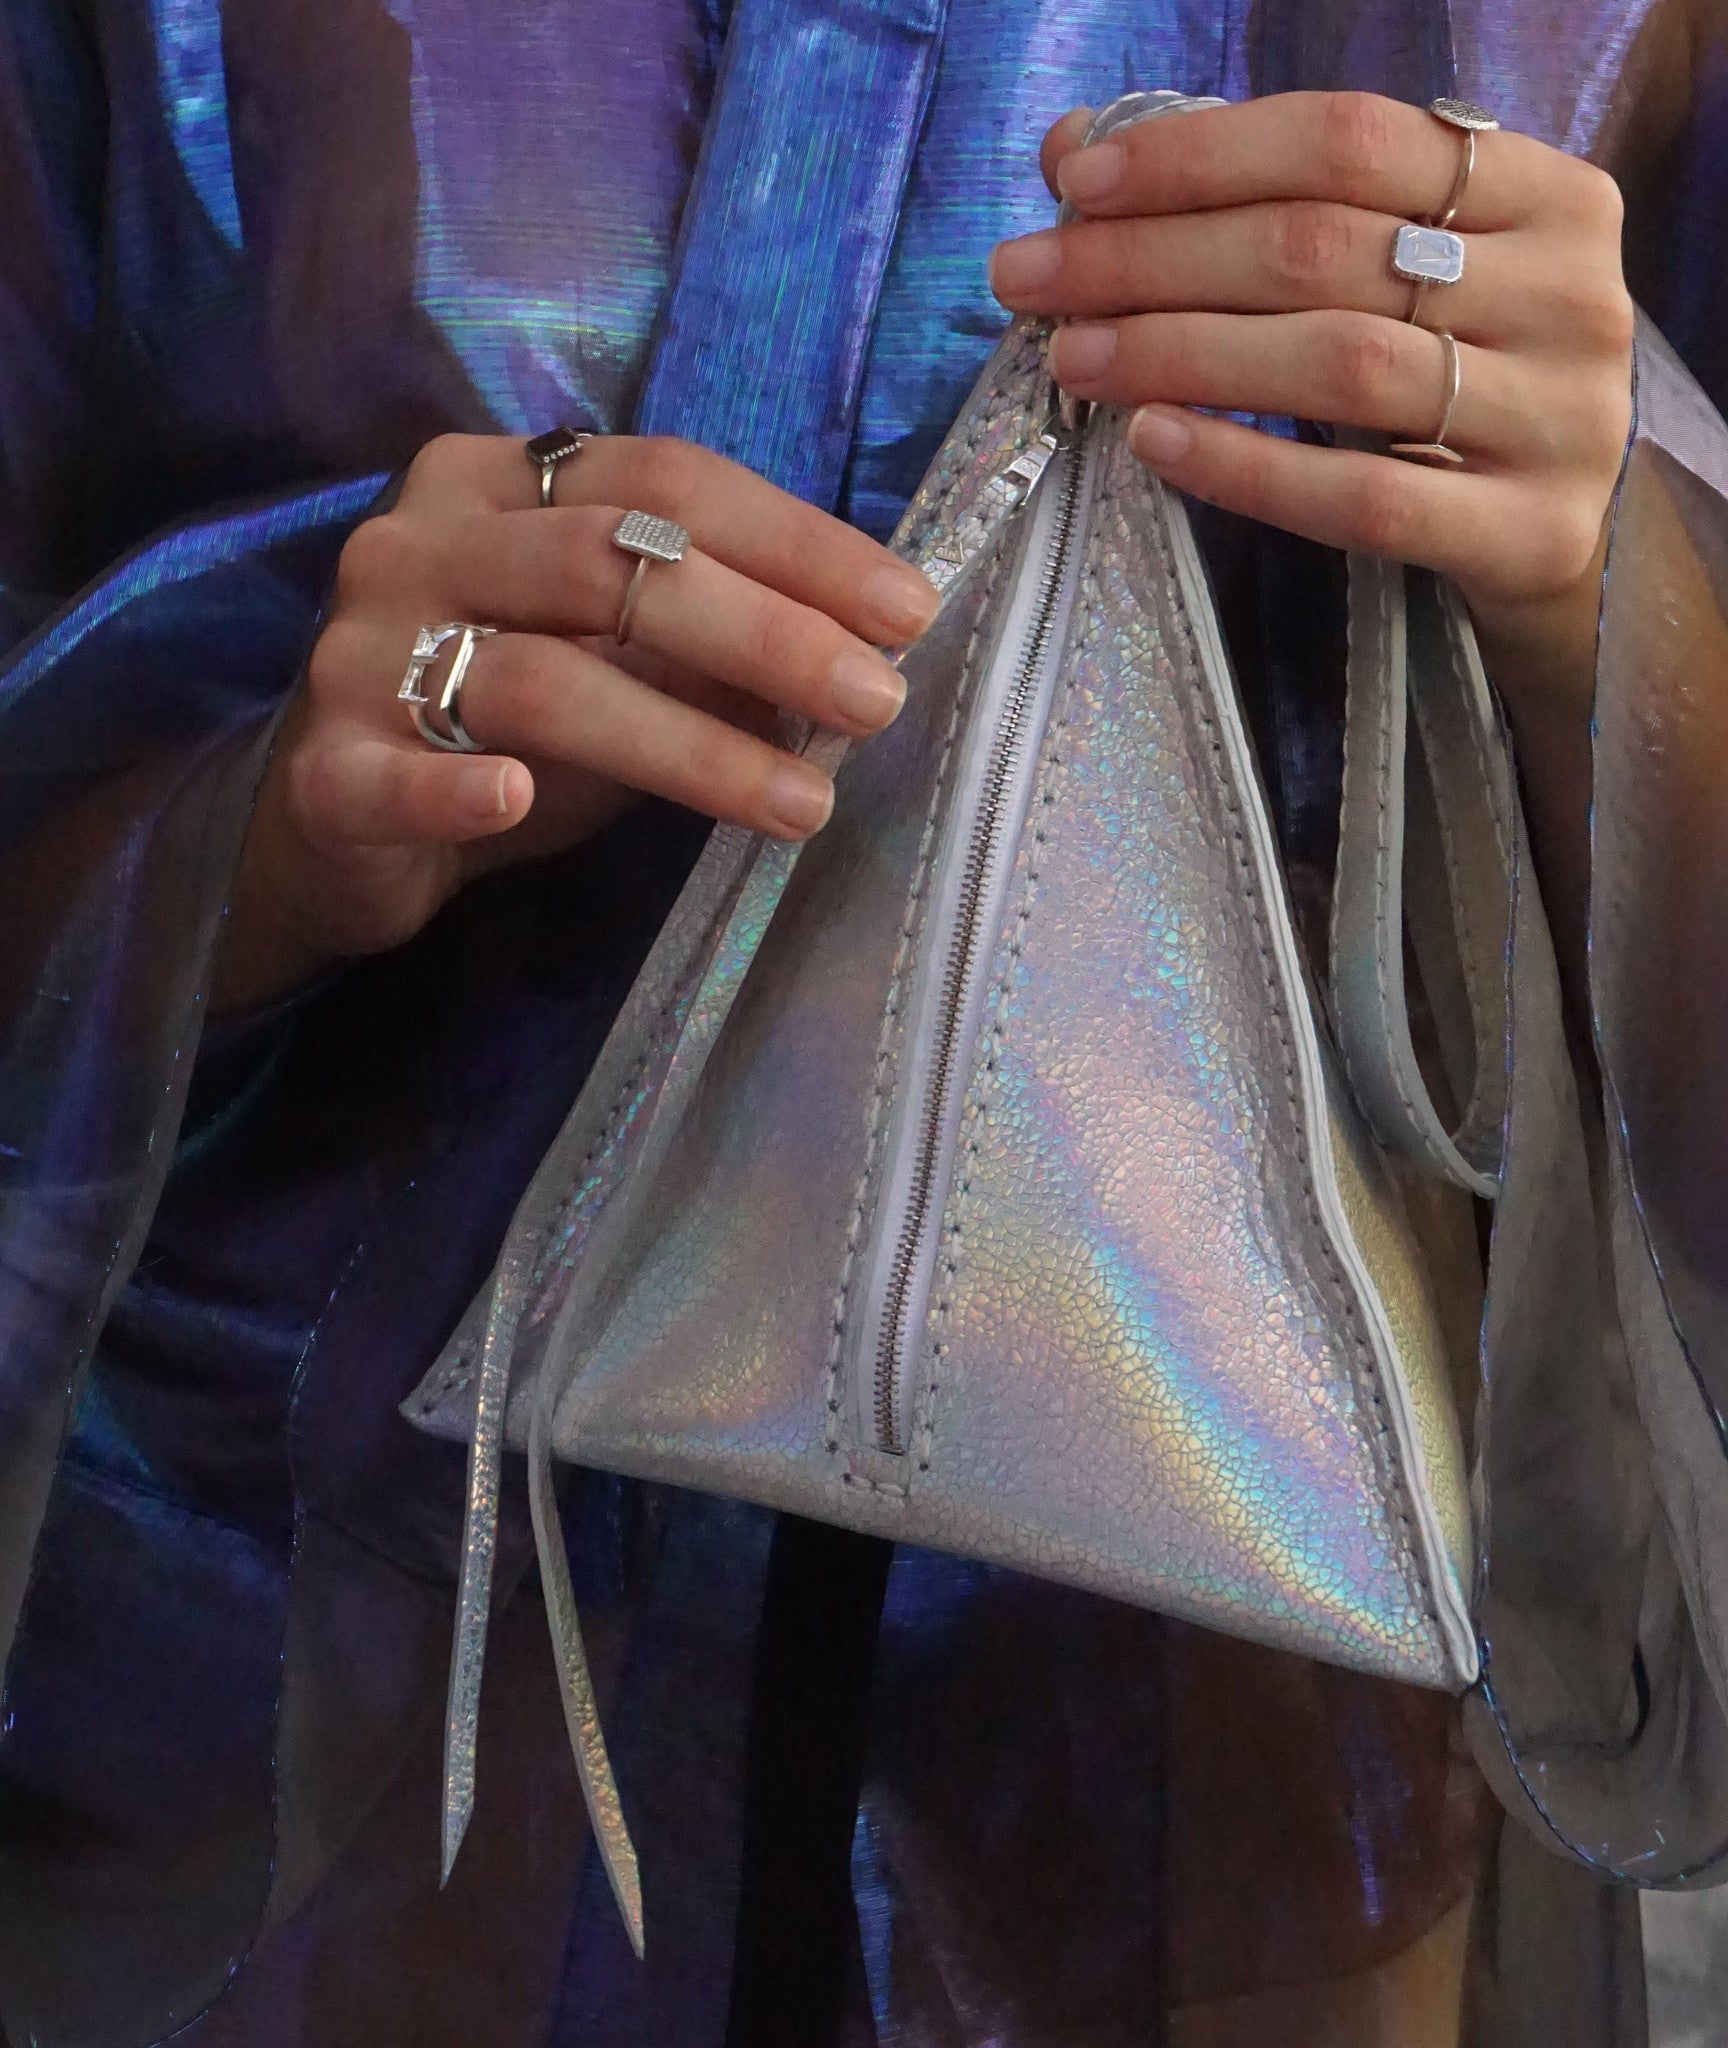 Maggie Laine IMG model Wendy Nichol SS17 Fashion Show Death Valley Triangle shape high quality leather bag Handmade in NYC New York City Devil Star Pyramid Egyptian Triangle Bag handbag purse wristlet Silver Rainbow Metallic Shiny Patent Leather